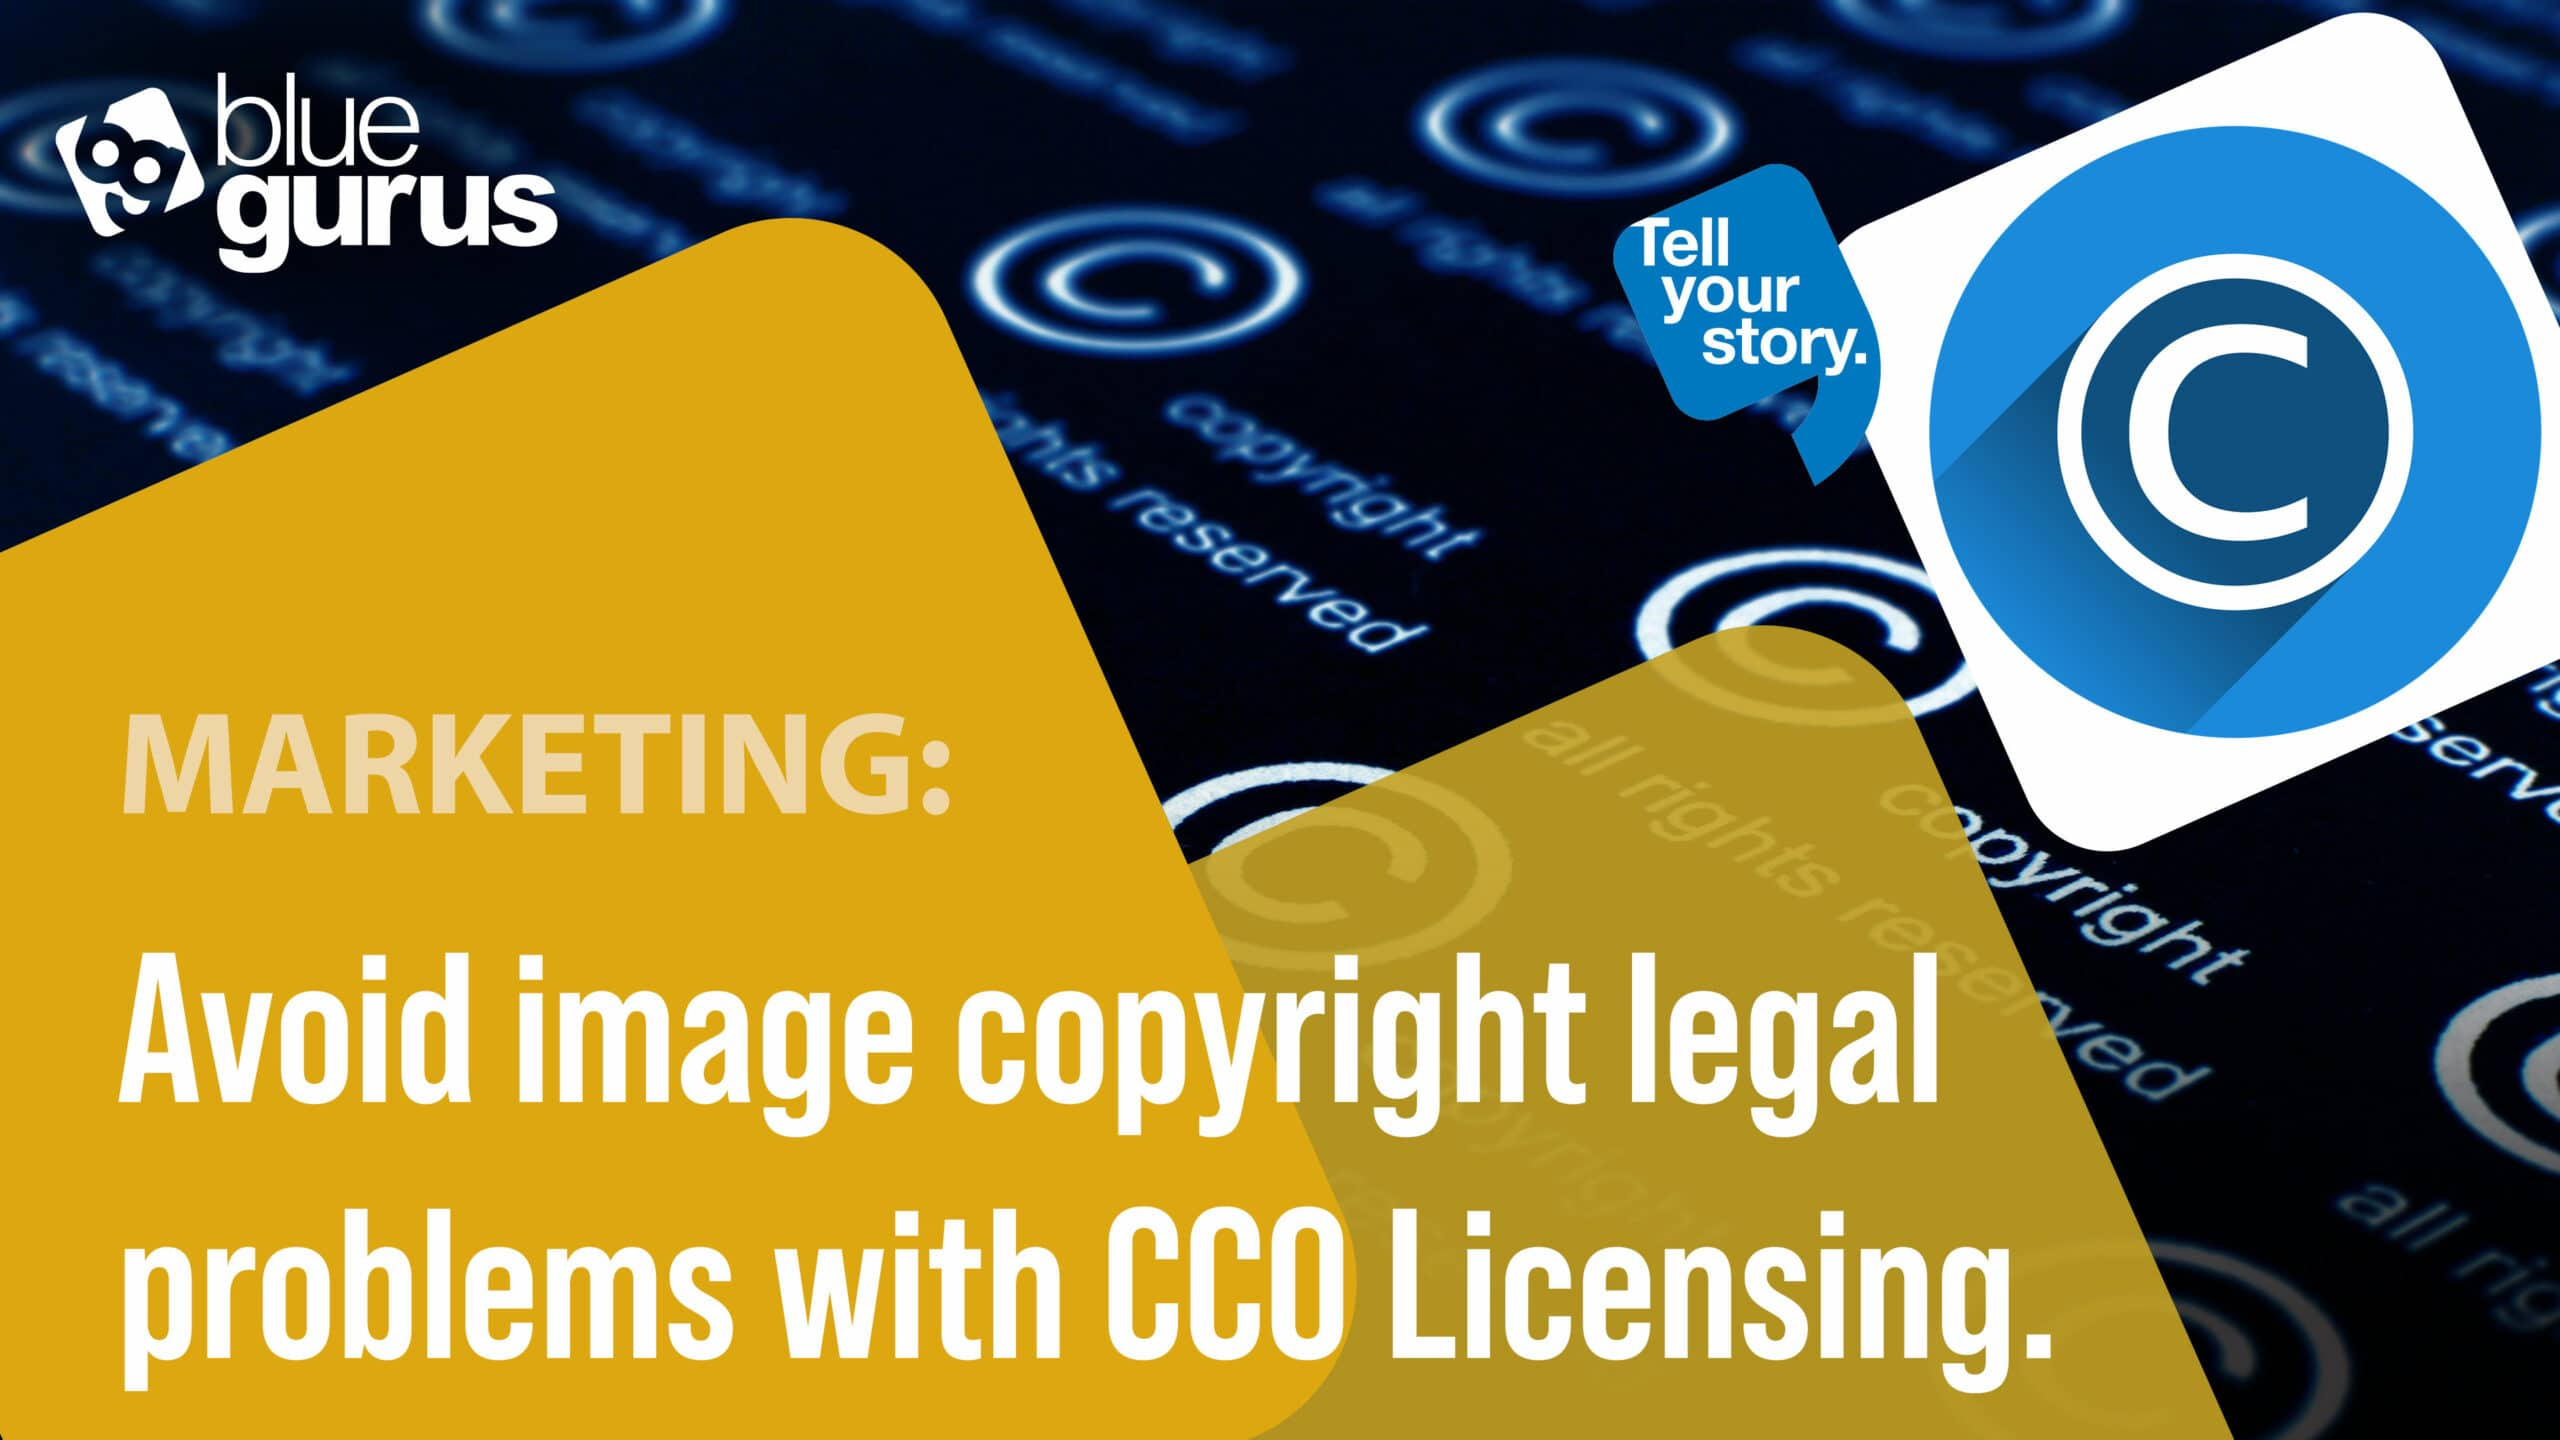 Avoid image copyright legal problems with CC0 Licensing.